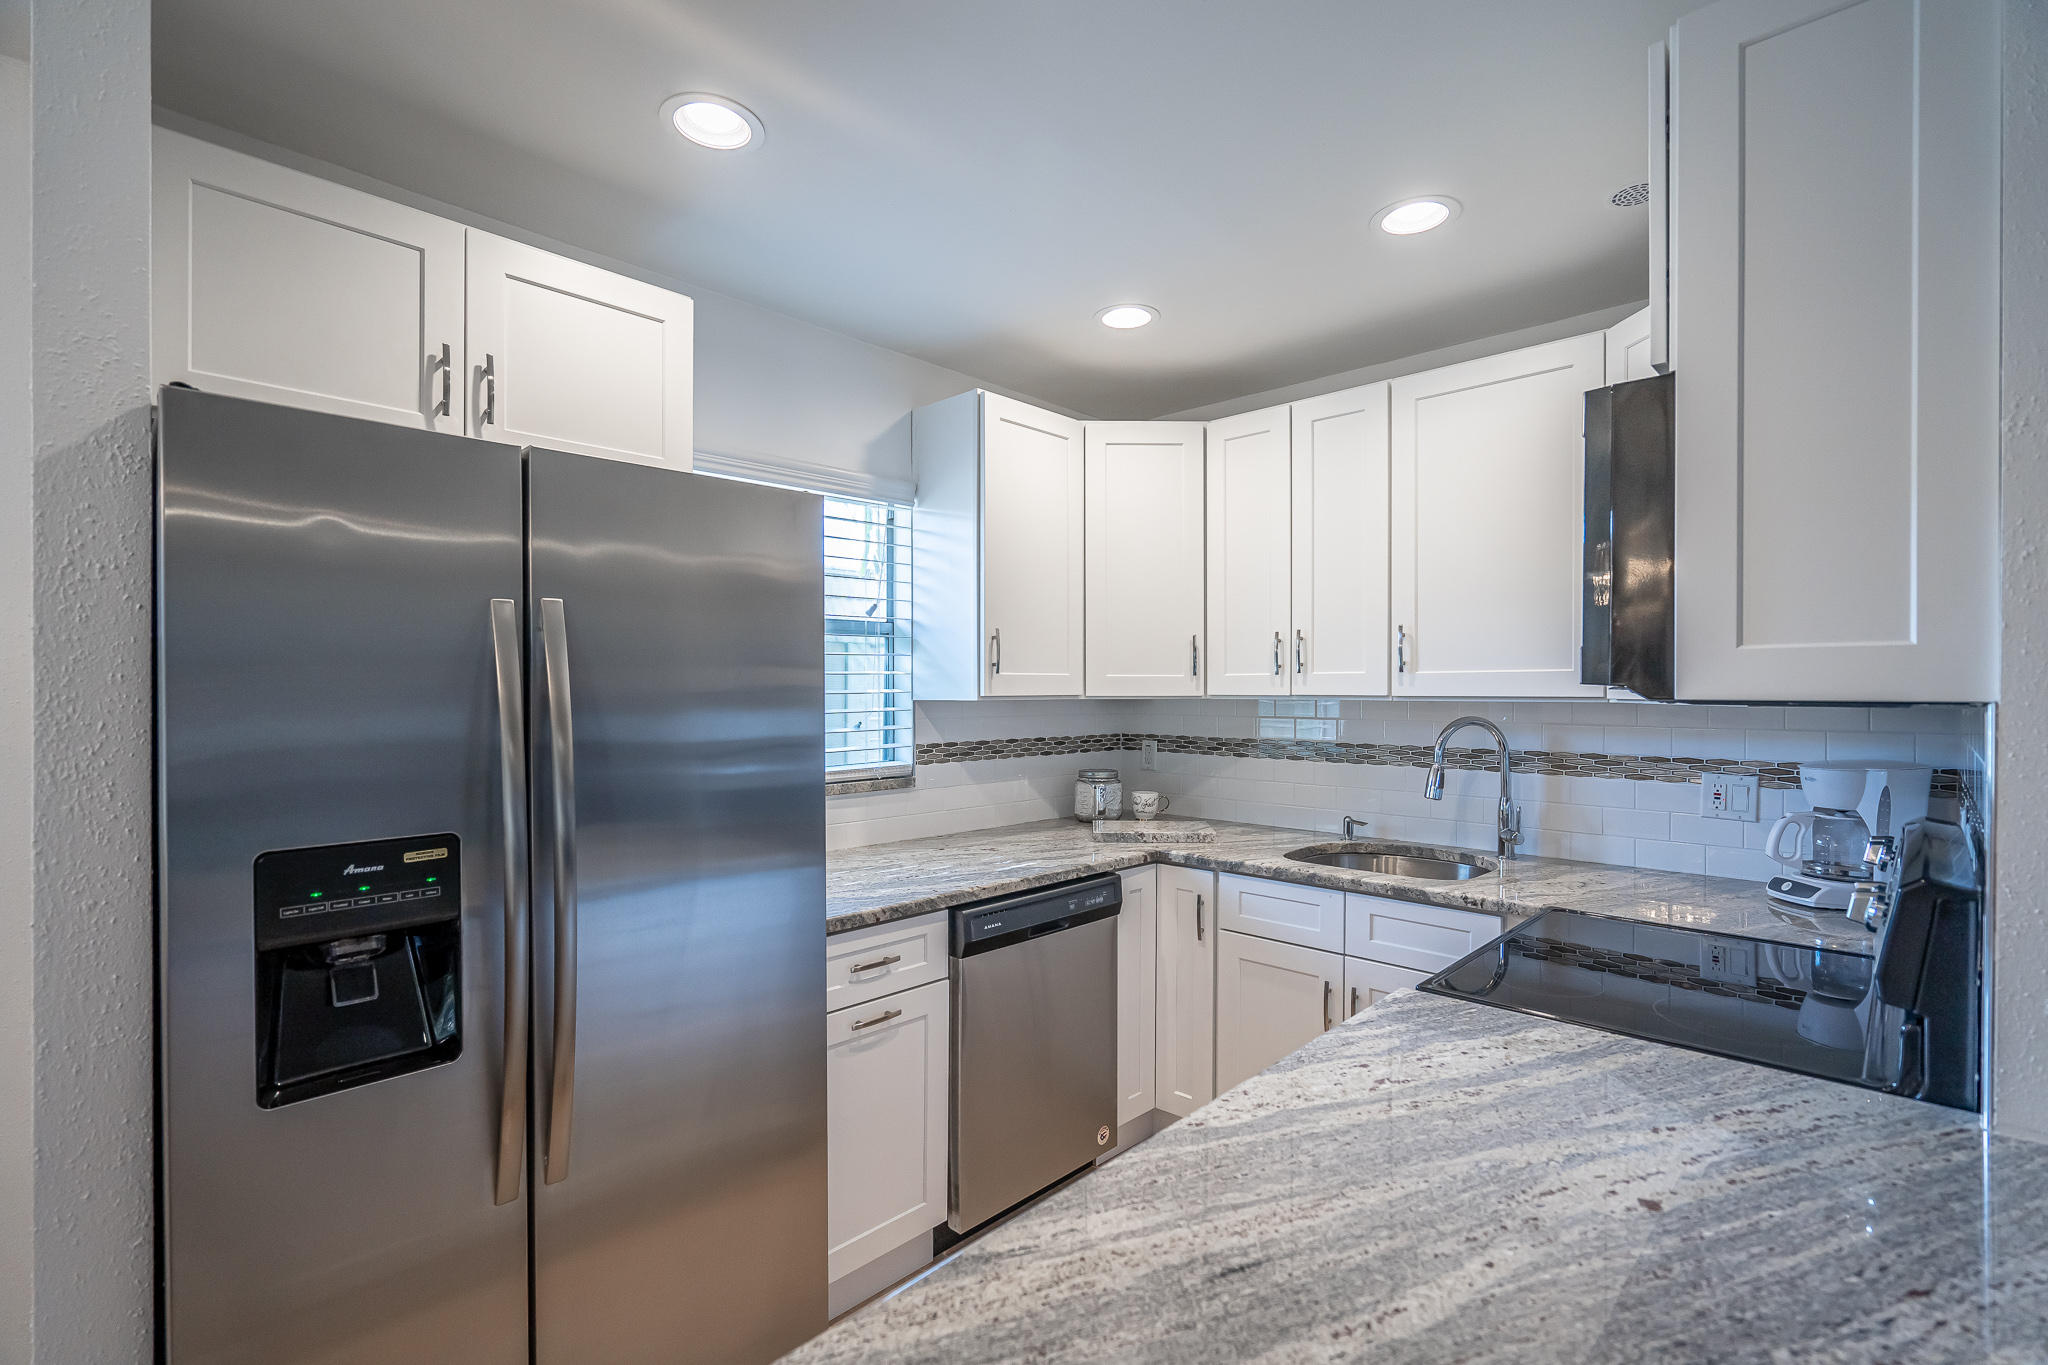 237 Brittany E, Delray Beach, Florida 33446, 2 Bedrooms Bedrooms, ,2 BathroomsBathrooms,Residential,for Rent,Brittany E,RX-10643266, , , ,for Rent